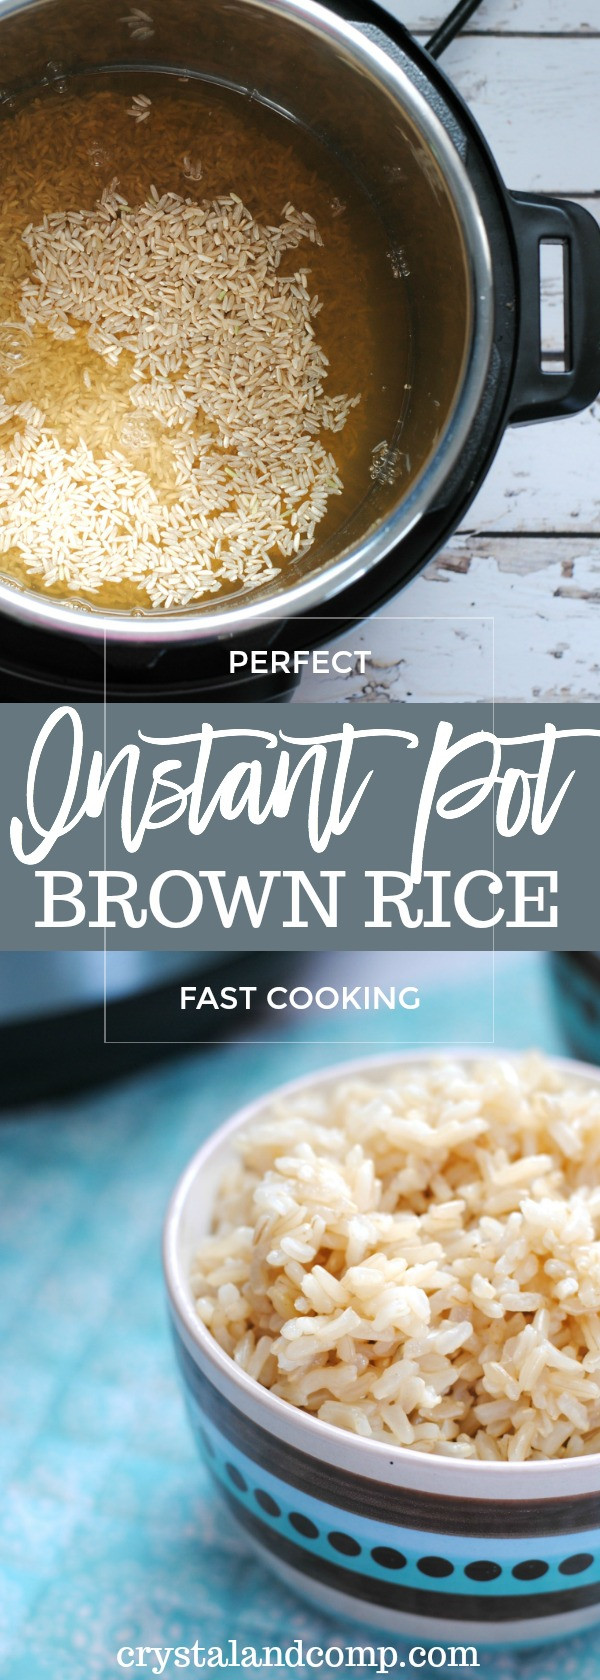 Instant Brown Rice  How to Make Brown Rice in the Instant Pot